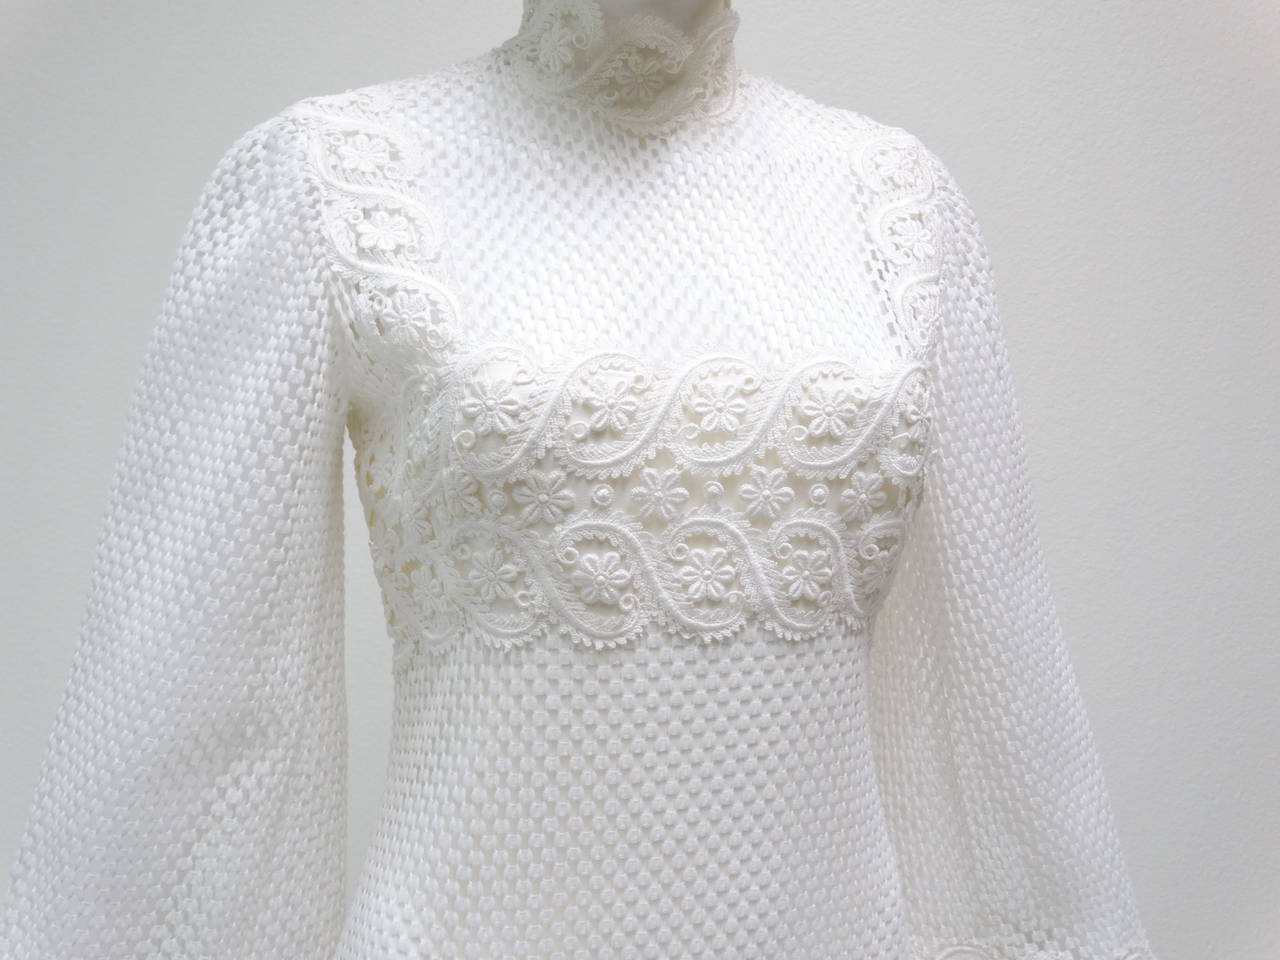 1960s Werle White Lace Maxi Dress 4